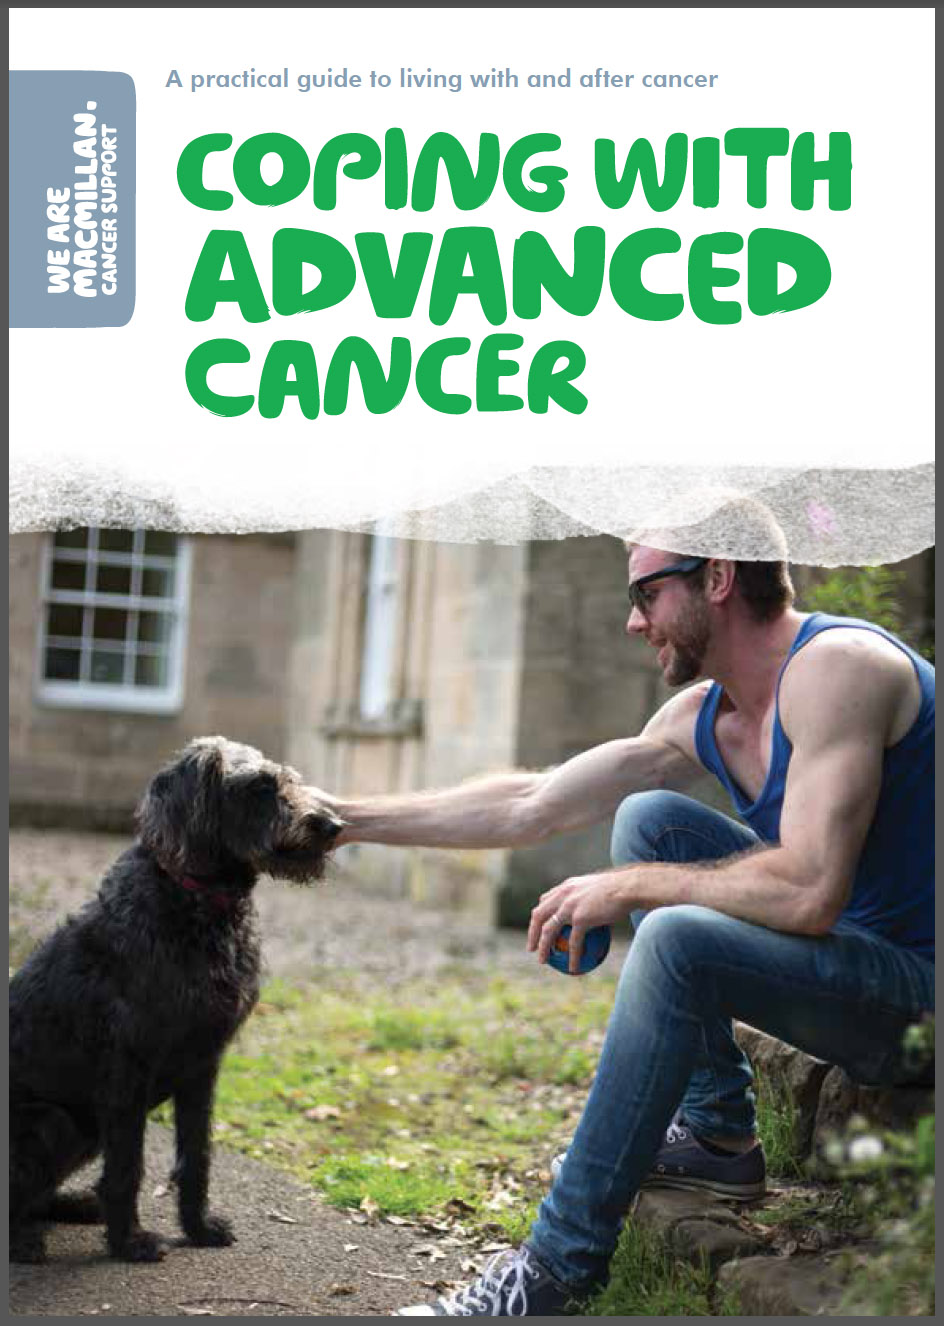 Campaign brochure for Macmillan Cancer Support